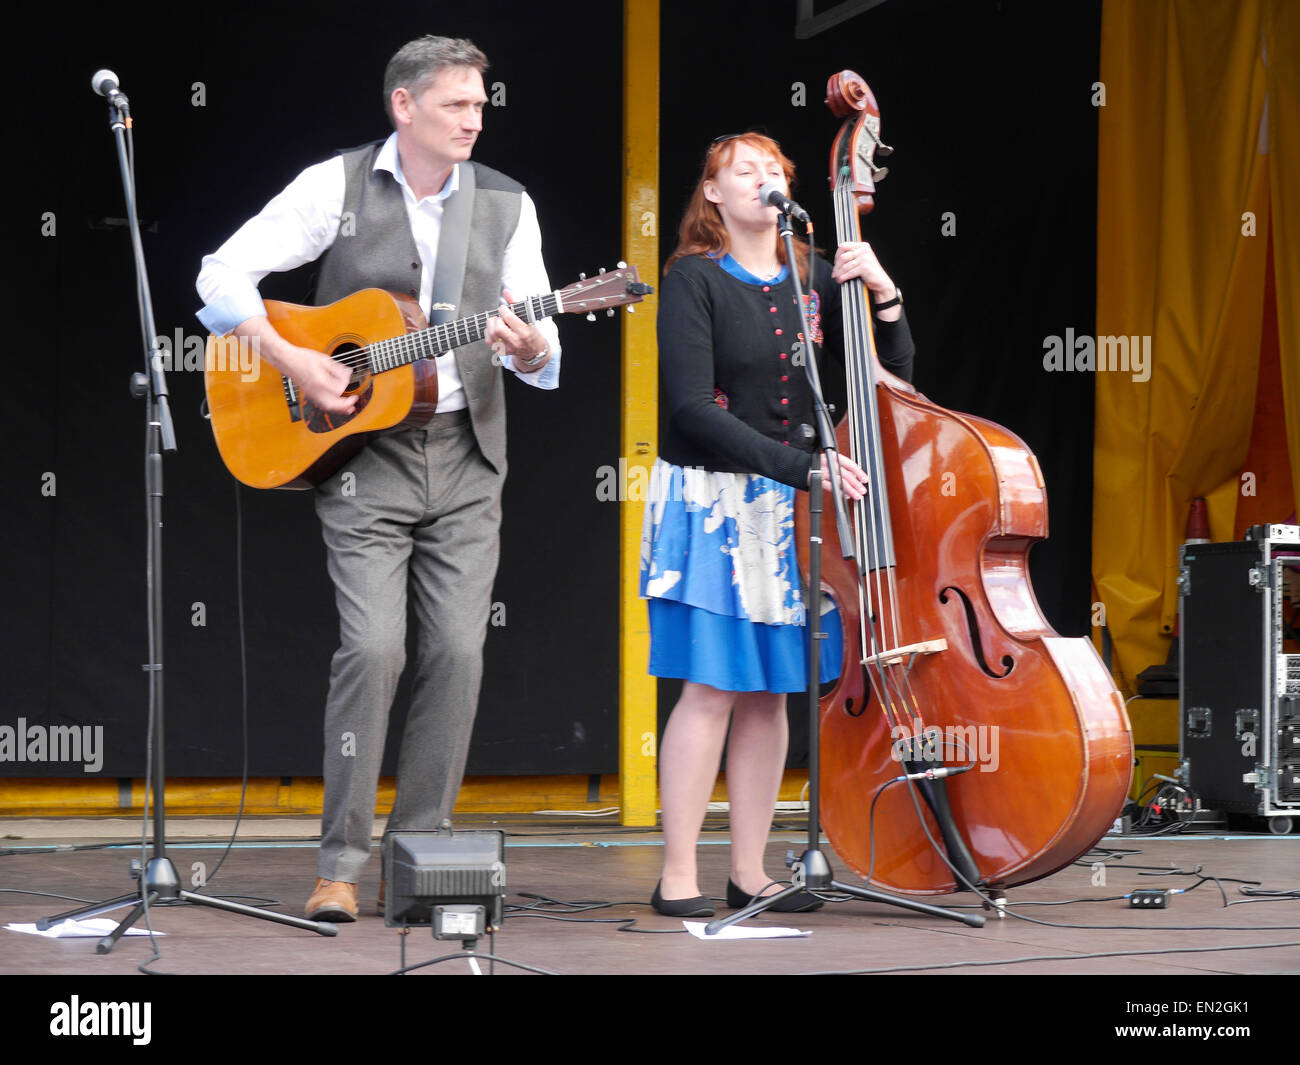 Singers of country music performing on St. George's Day in Grantham, Lincolnshire, England, UK - Stock Image